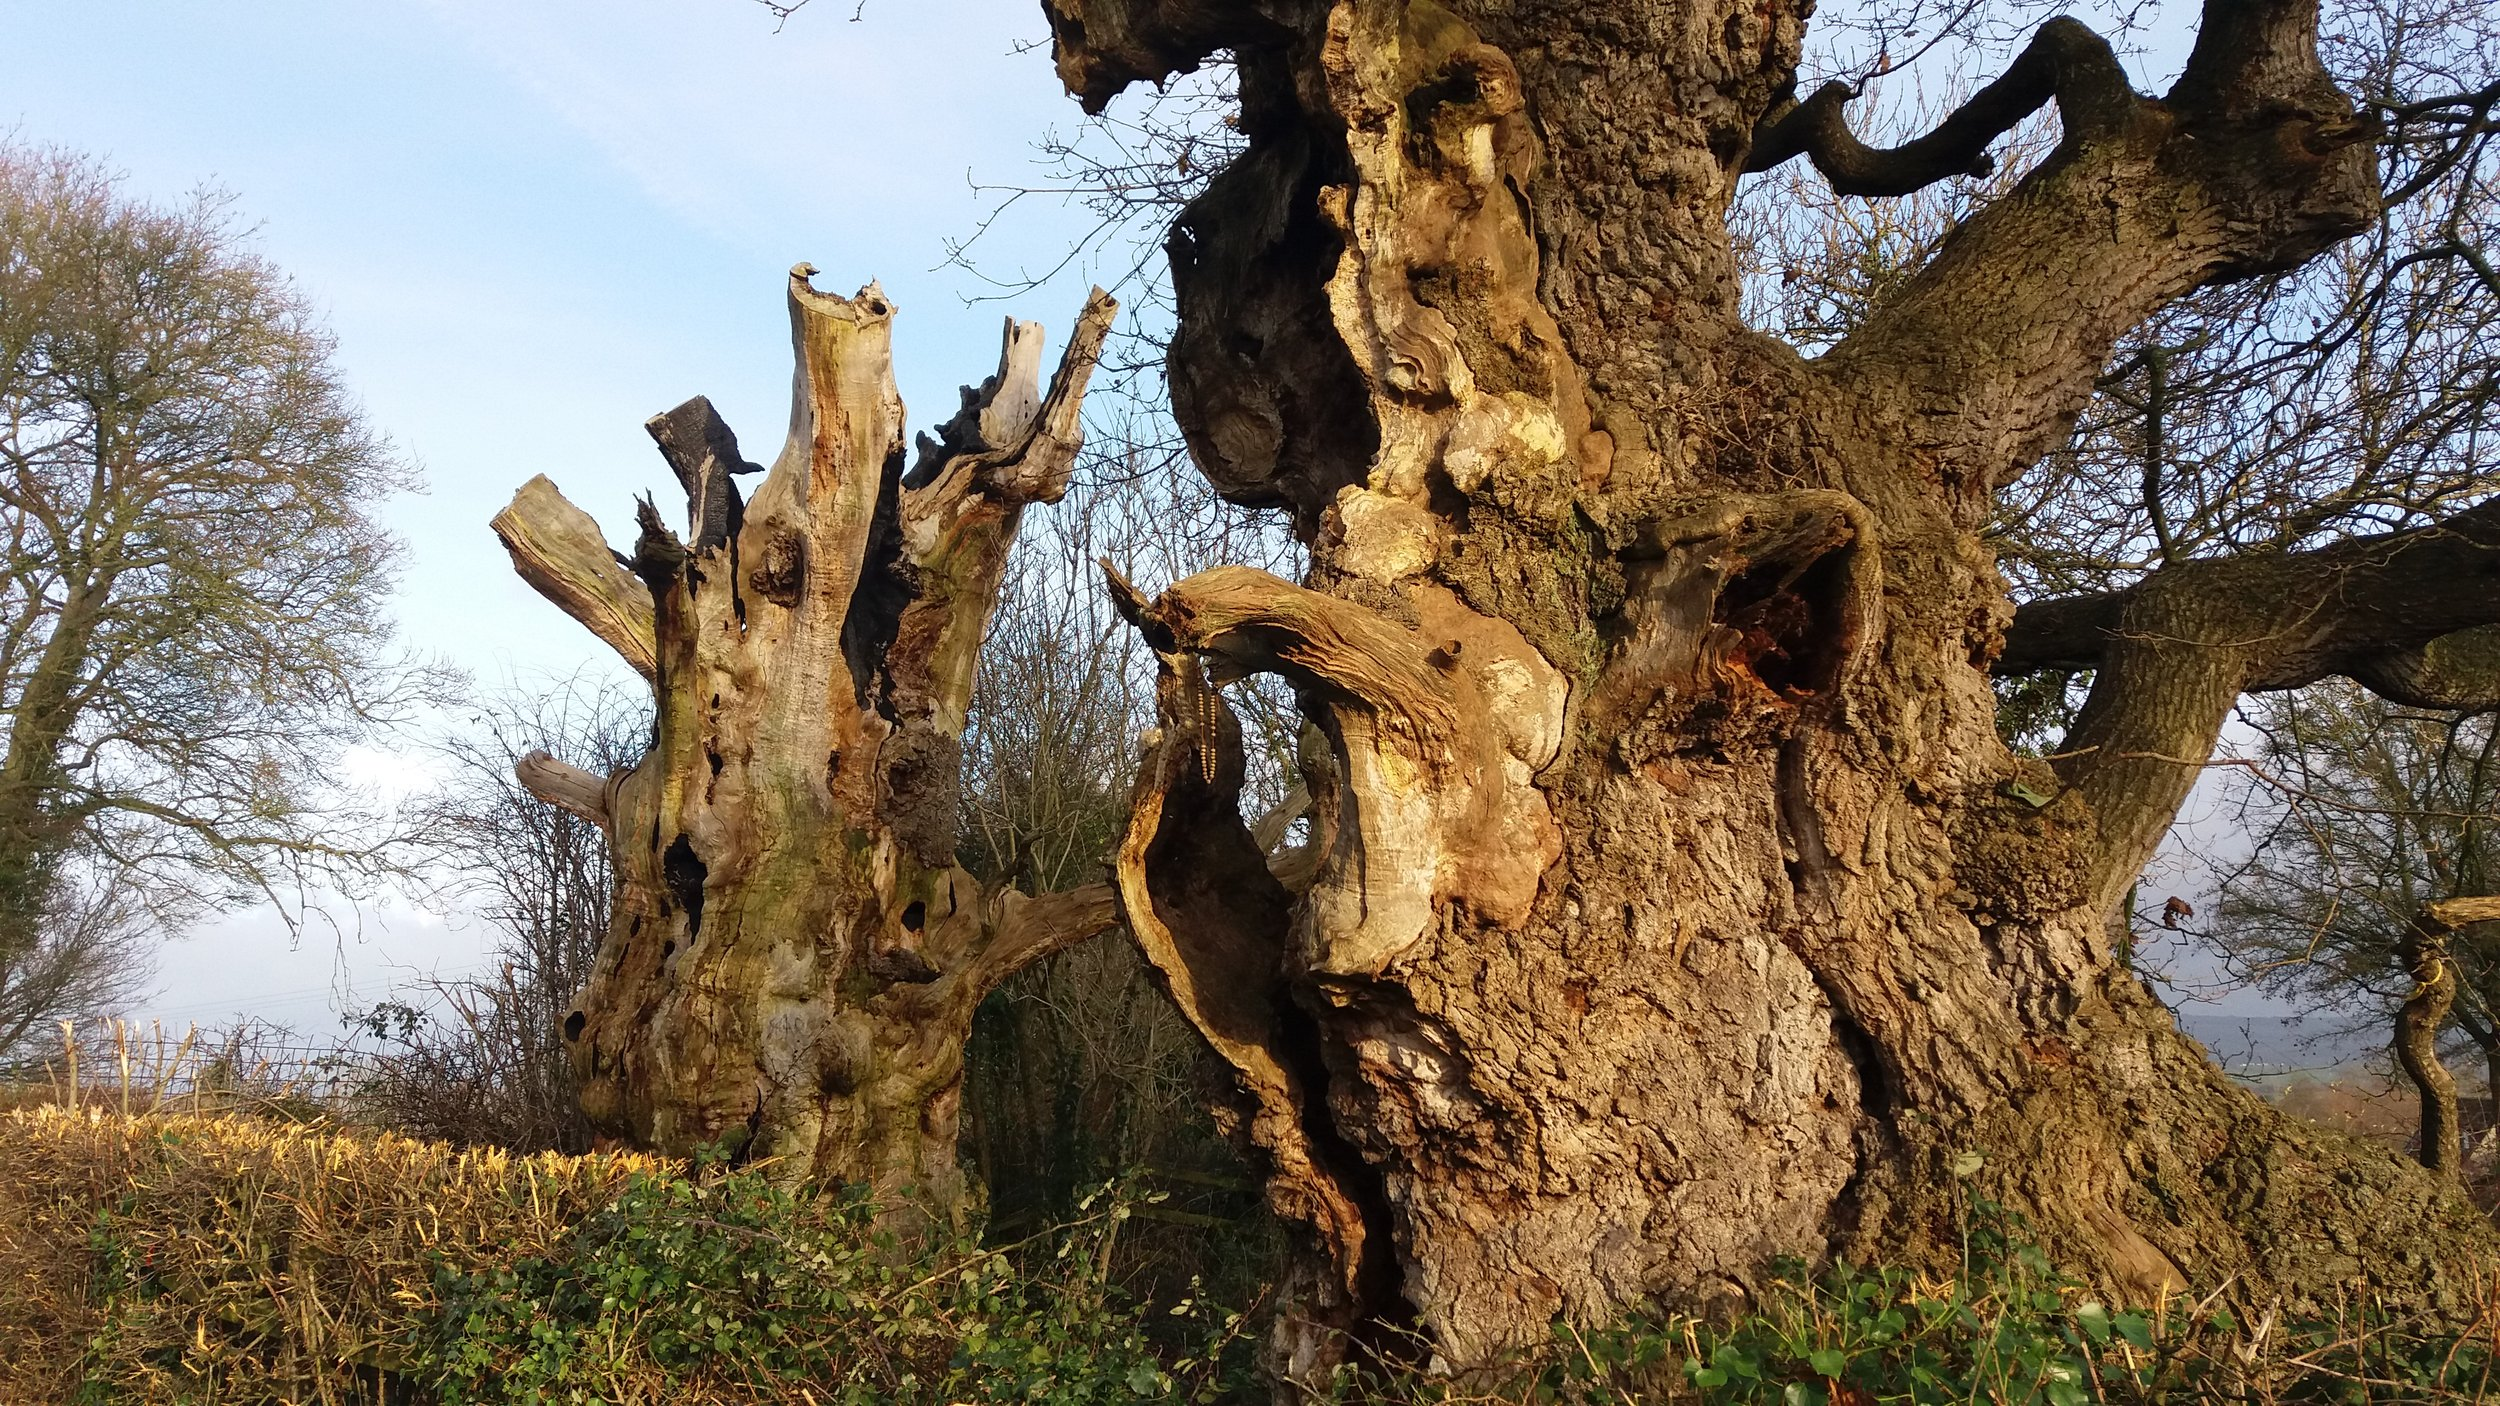 Gog and Magog (The Oaks of Avalon), Glastonbury, UK.  Thought to be circa 2000 years old.  A paradise for all manner of critters.